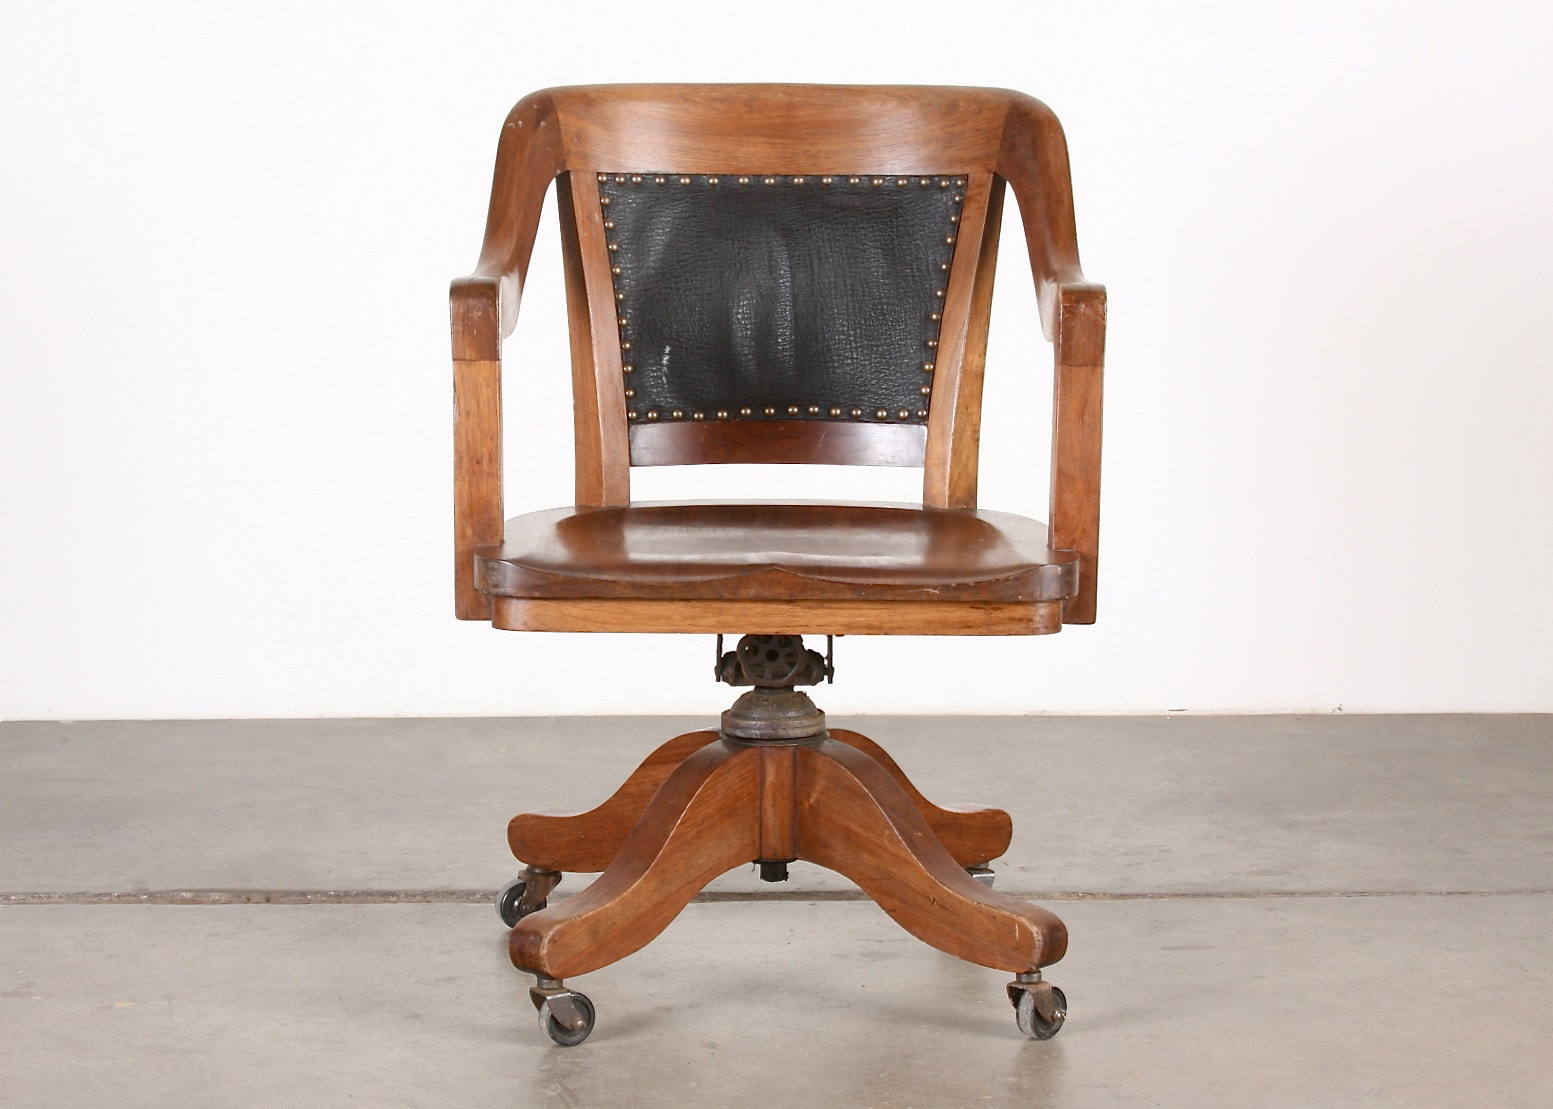 B.L. Marble Chair Company Walnut Desk Chair on Casters